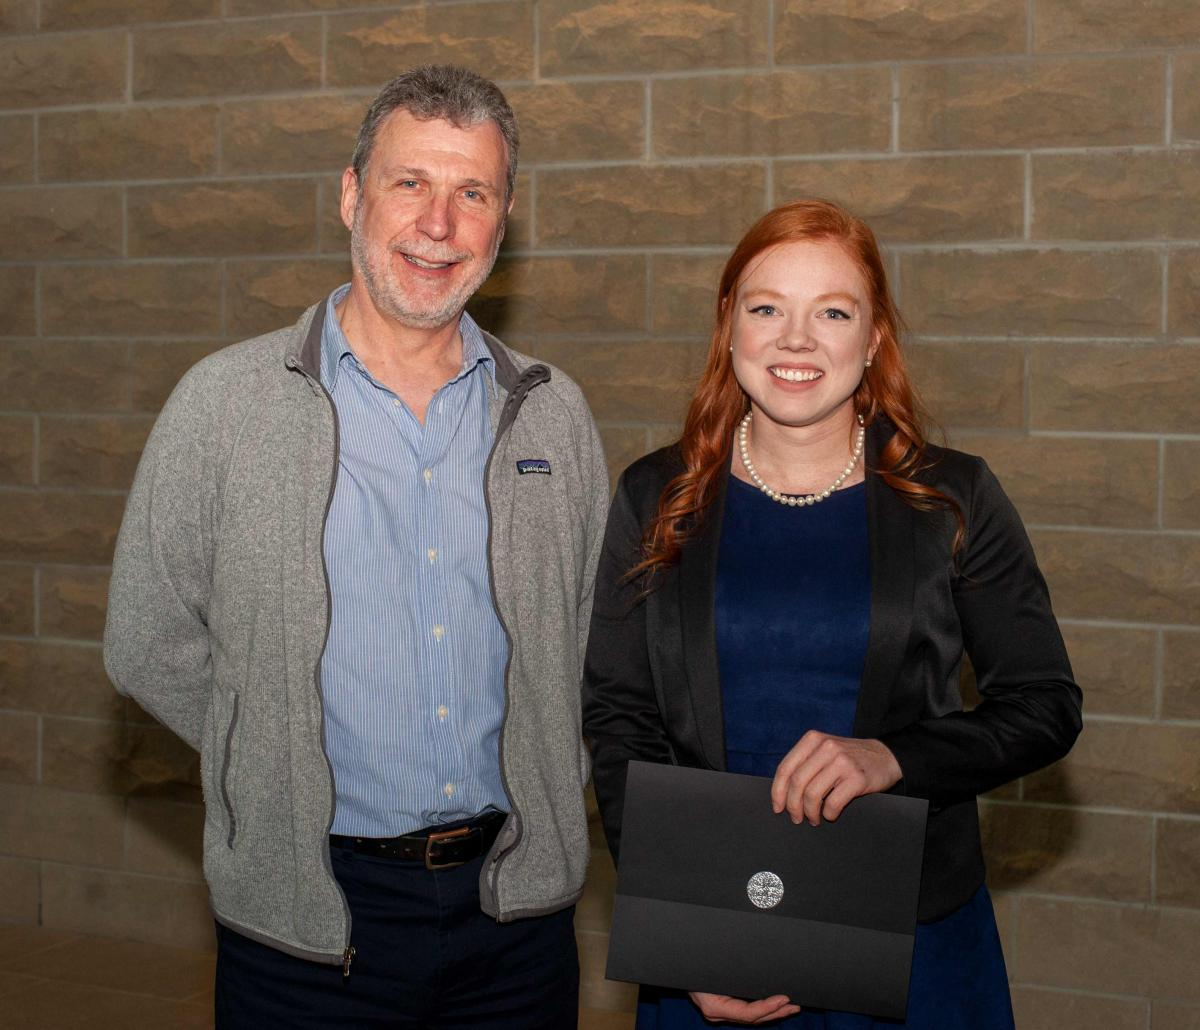 Prof. Brian Husband and Stacey Forbes